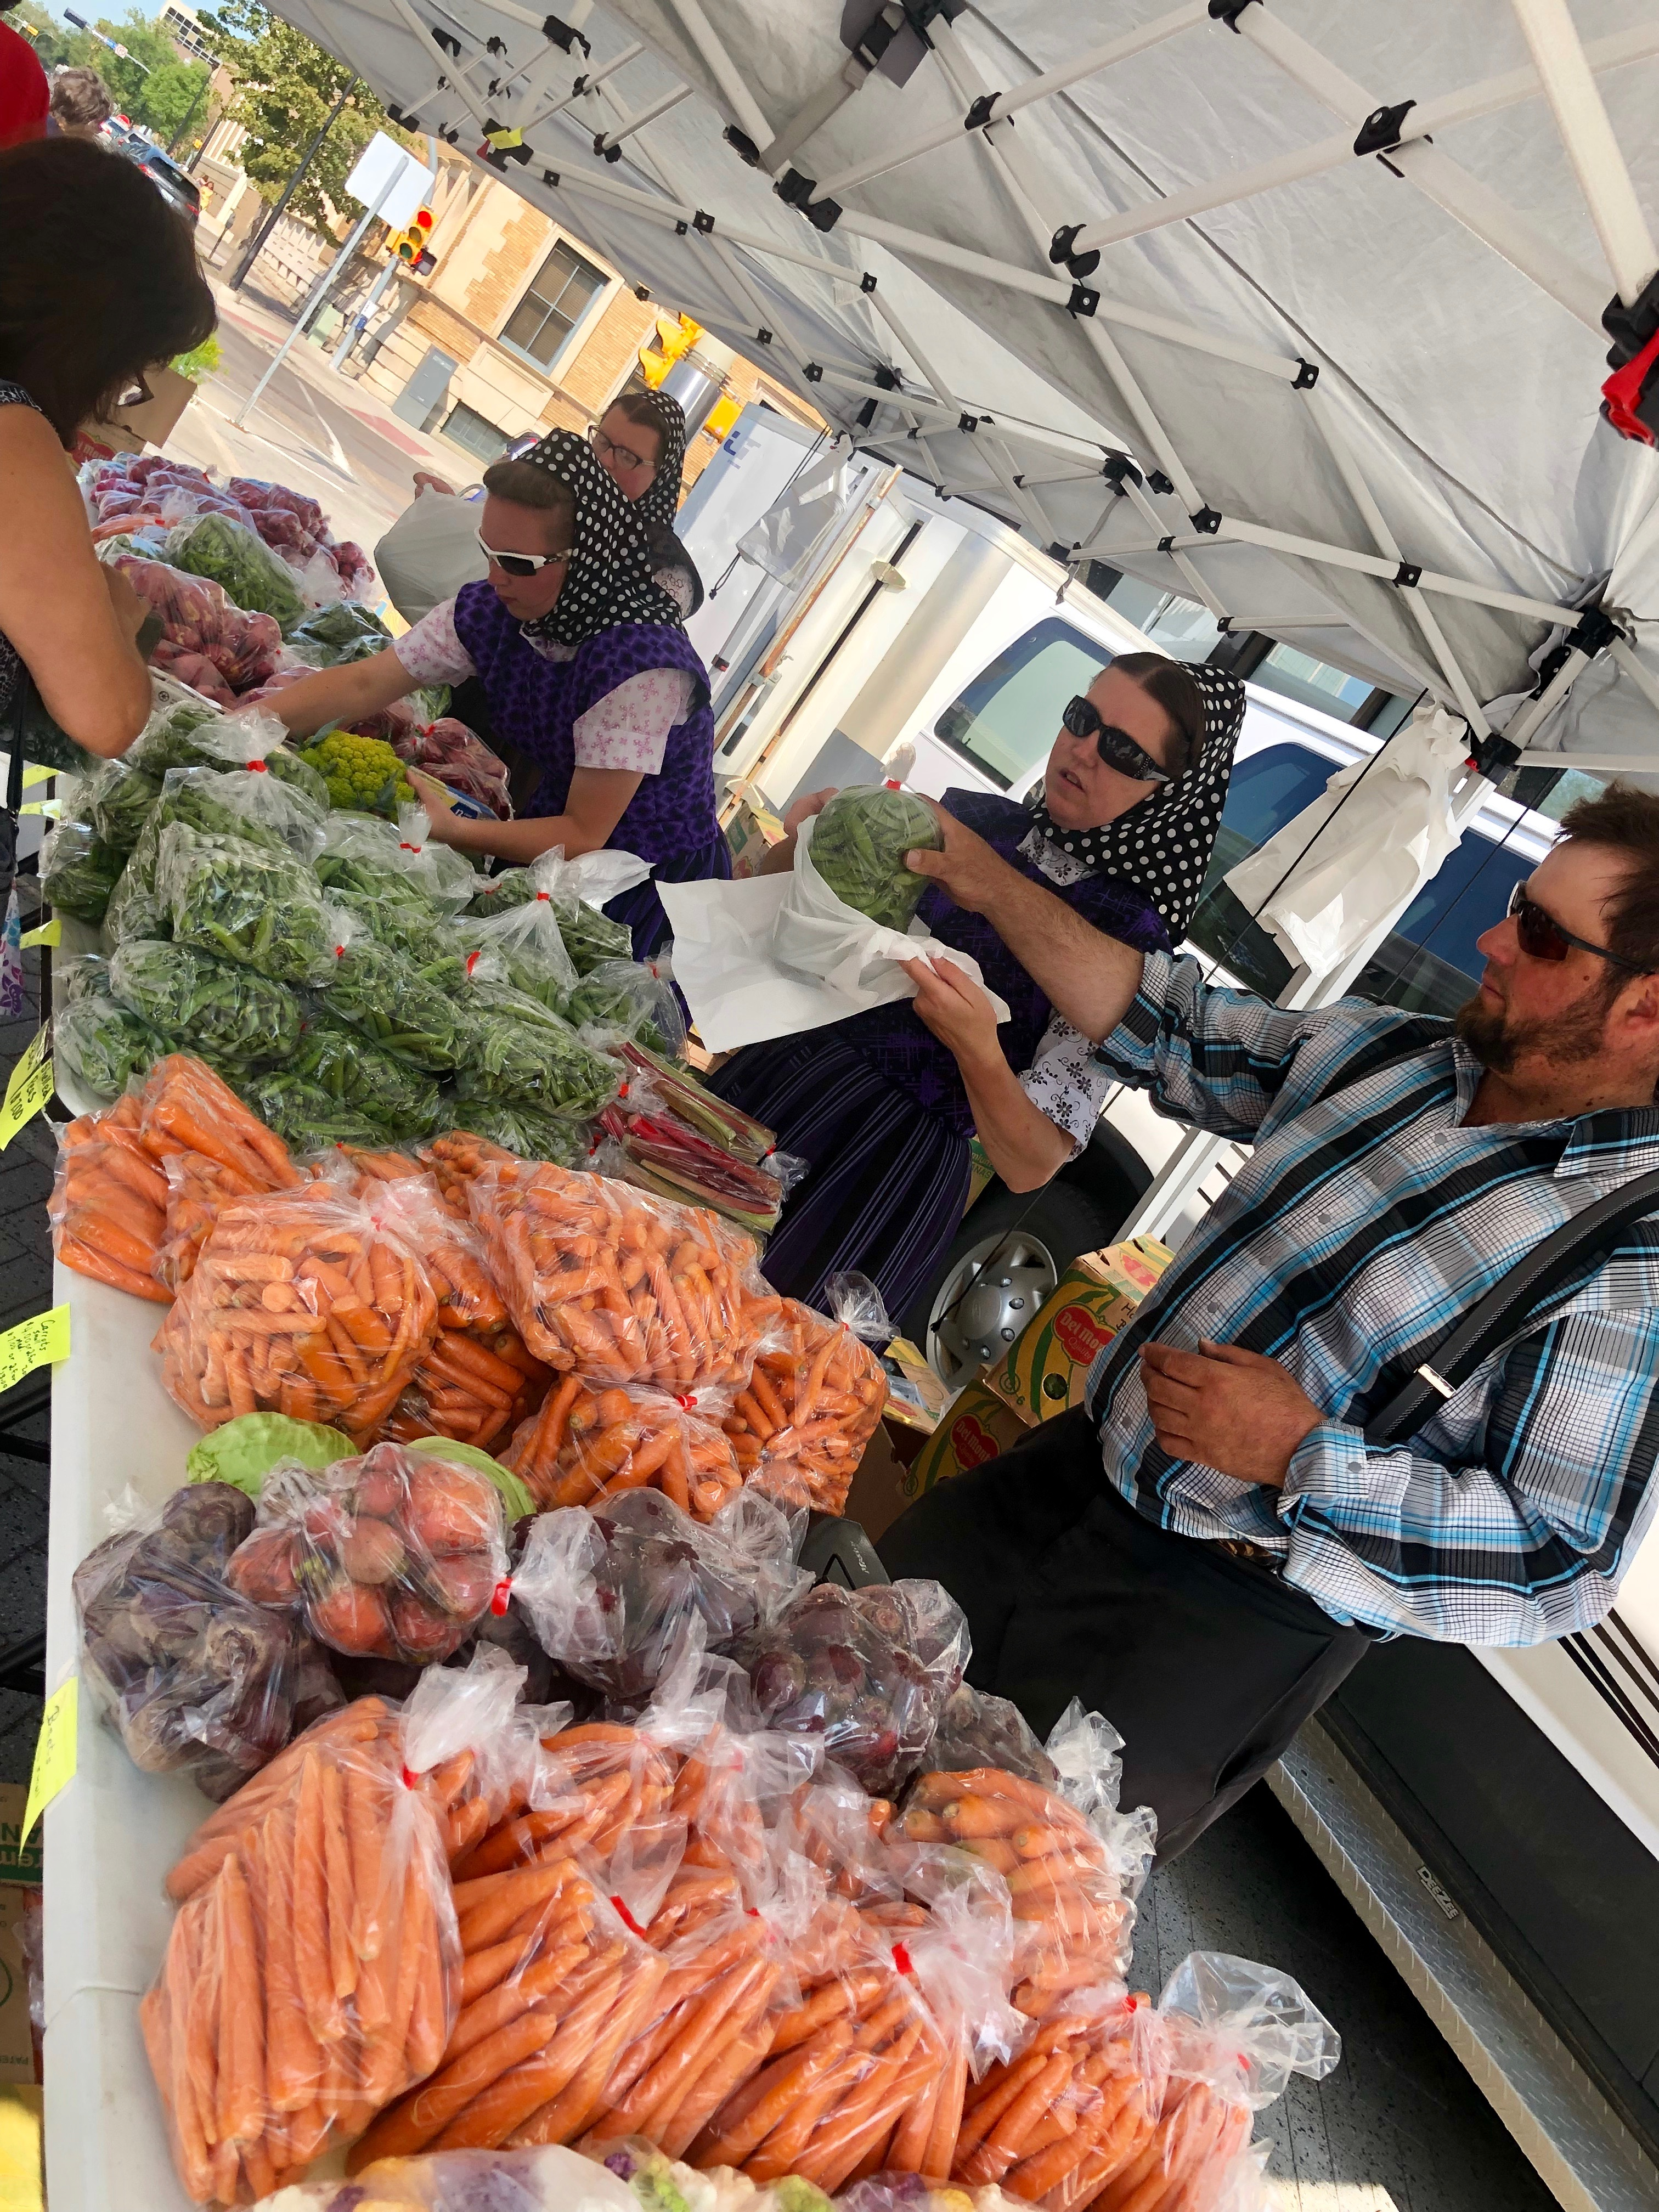 This Week at the RFM (Wed Aug 7, Thurs Aug 8 & Sat Aug 10) - Image 4